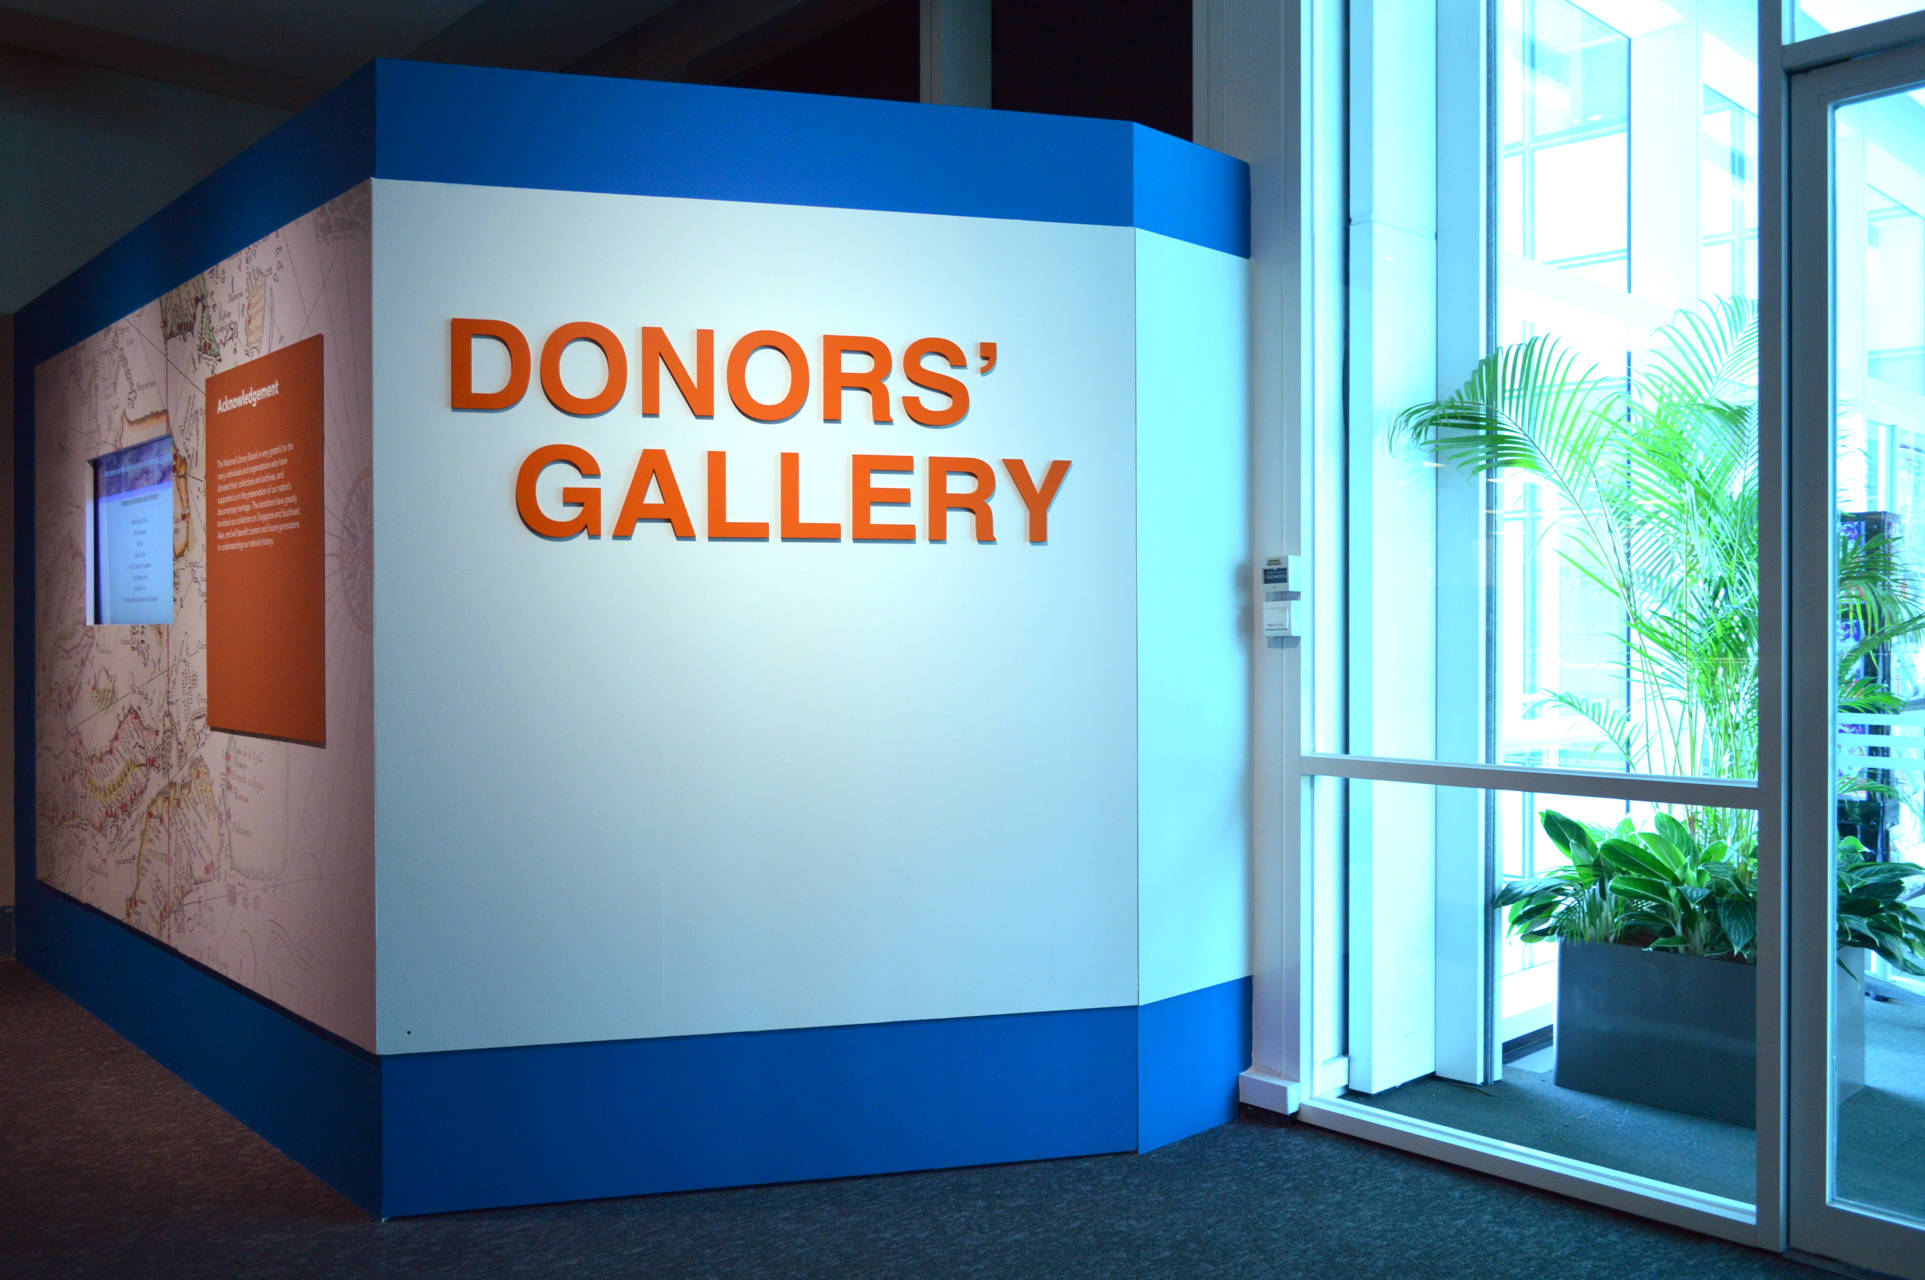 Photo of the National Library Donors' Gallery title wall.